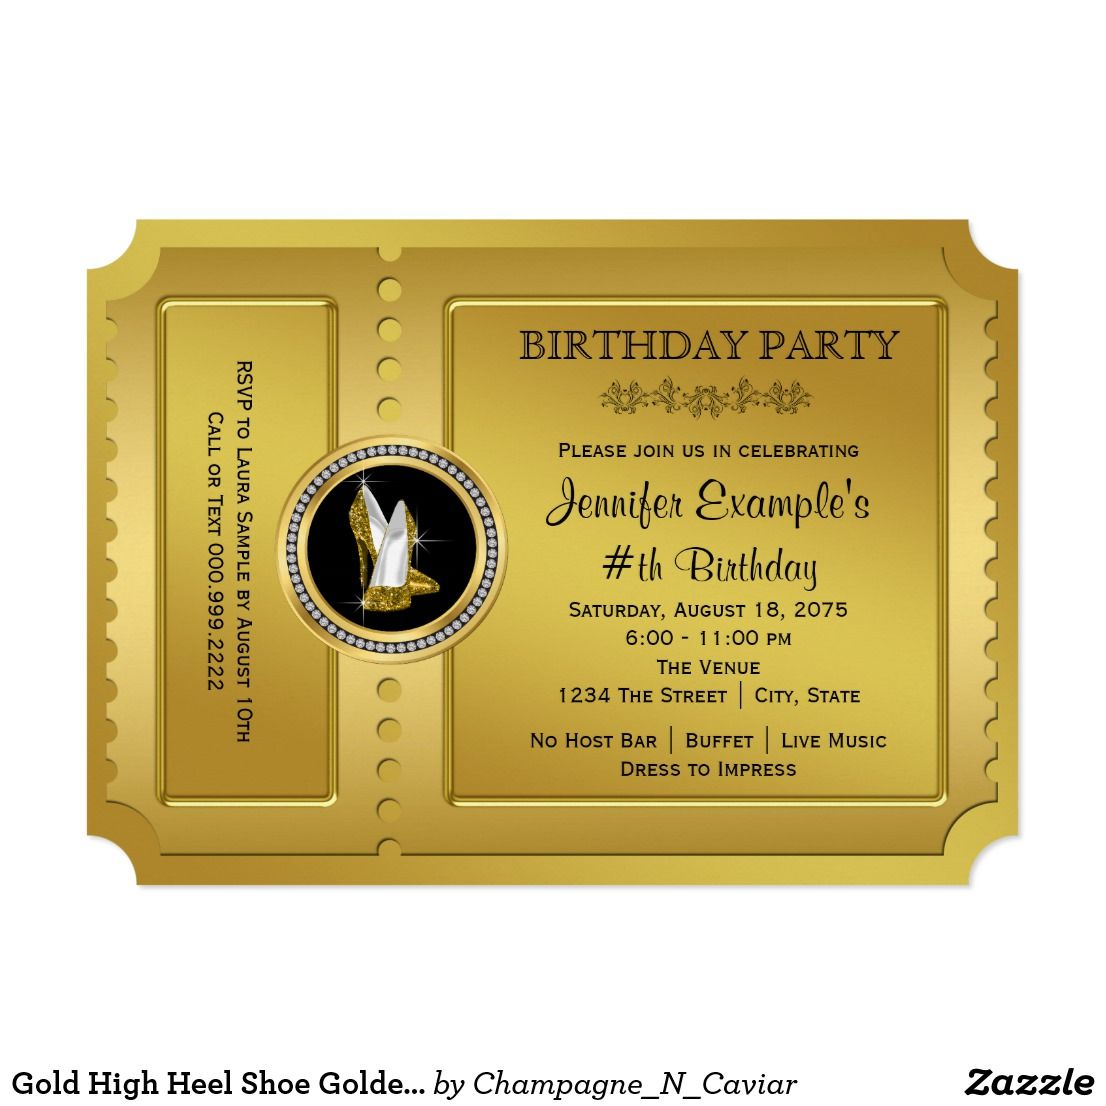 Gold High Heel Shoe Golden Ticket Birthday Party Card Beautiful gold ...